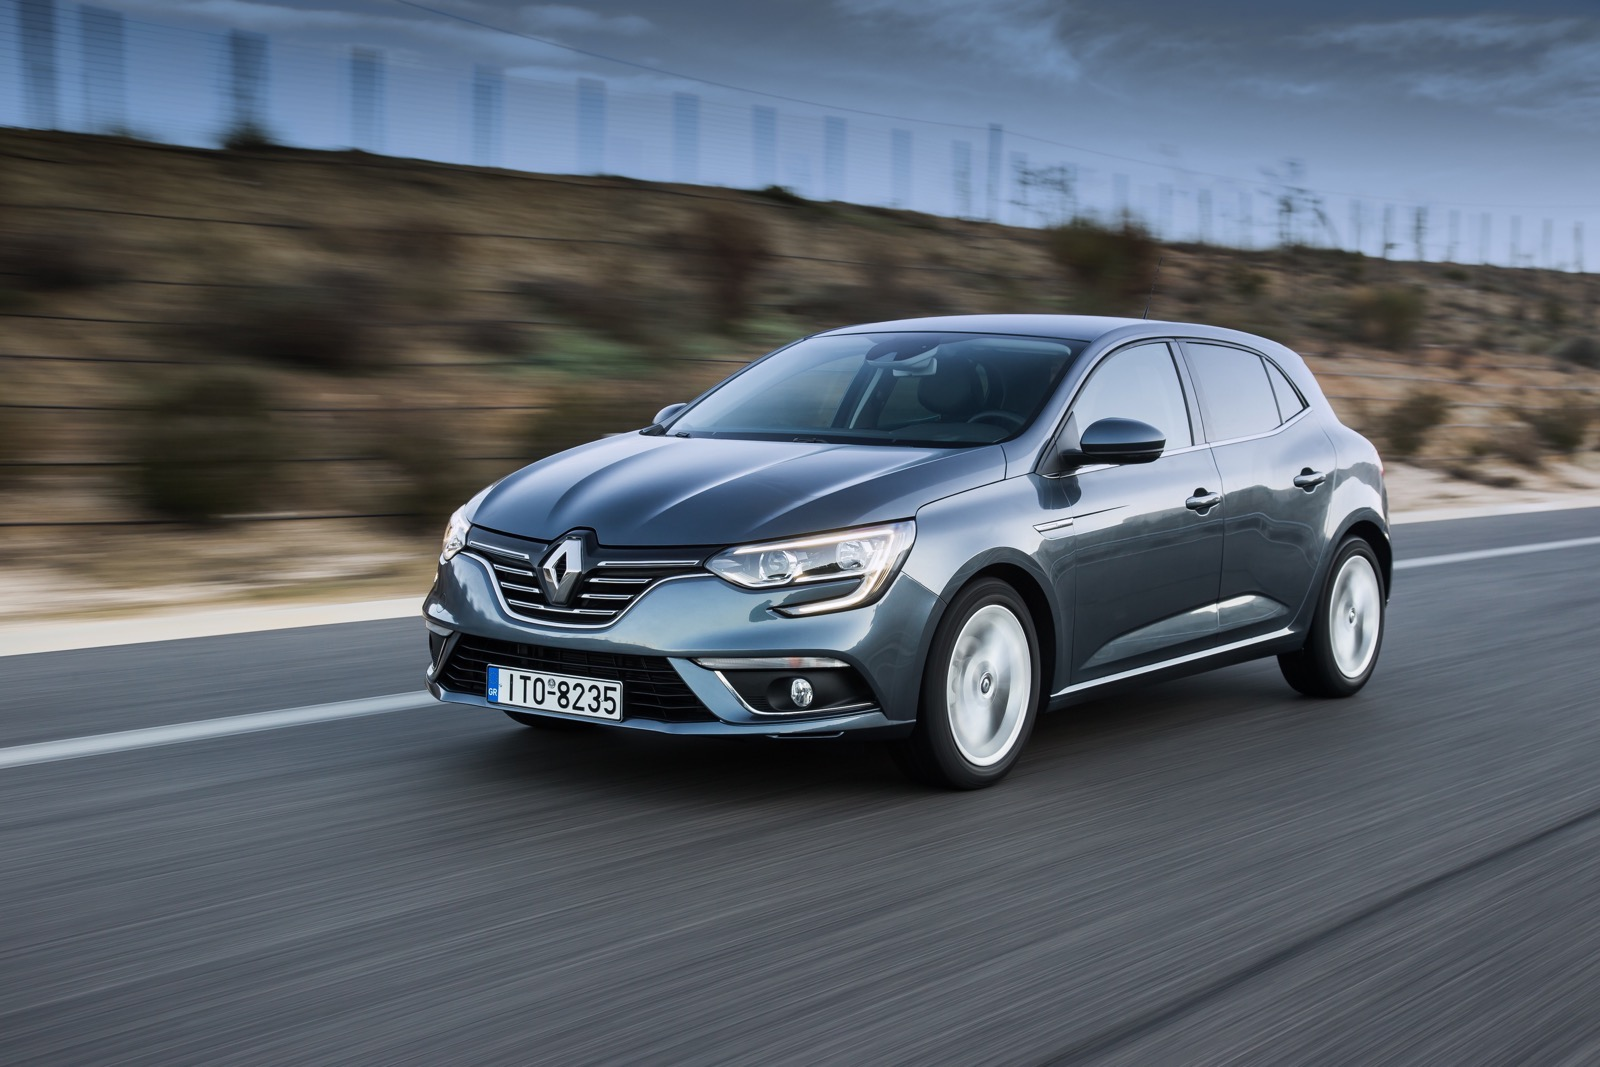 First_Drive_Renault_Megane_58